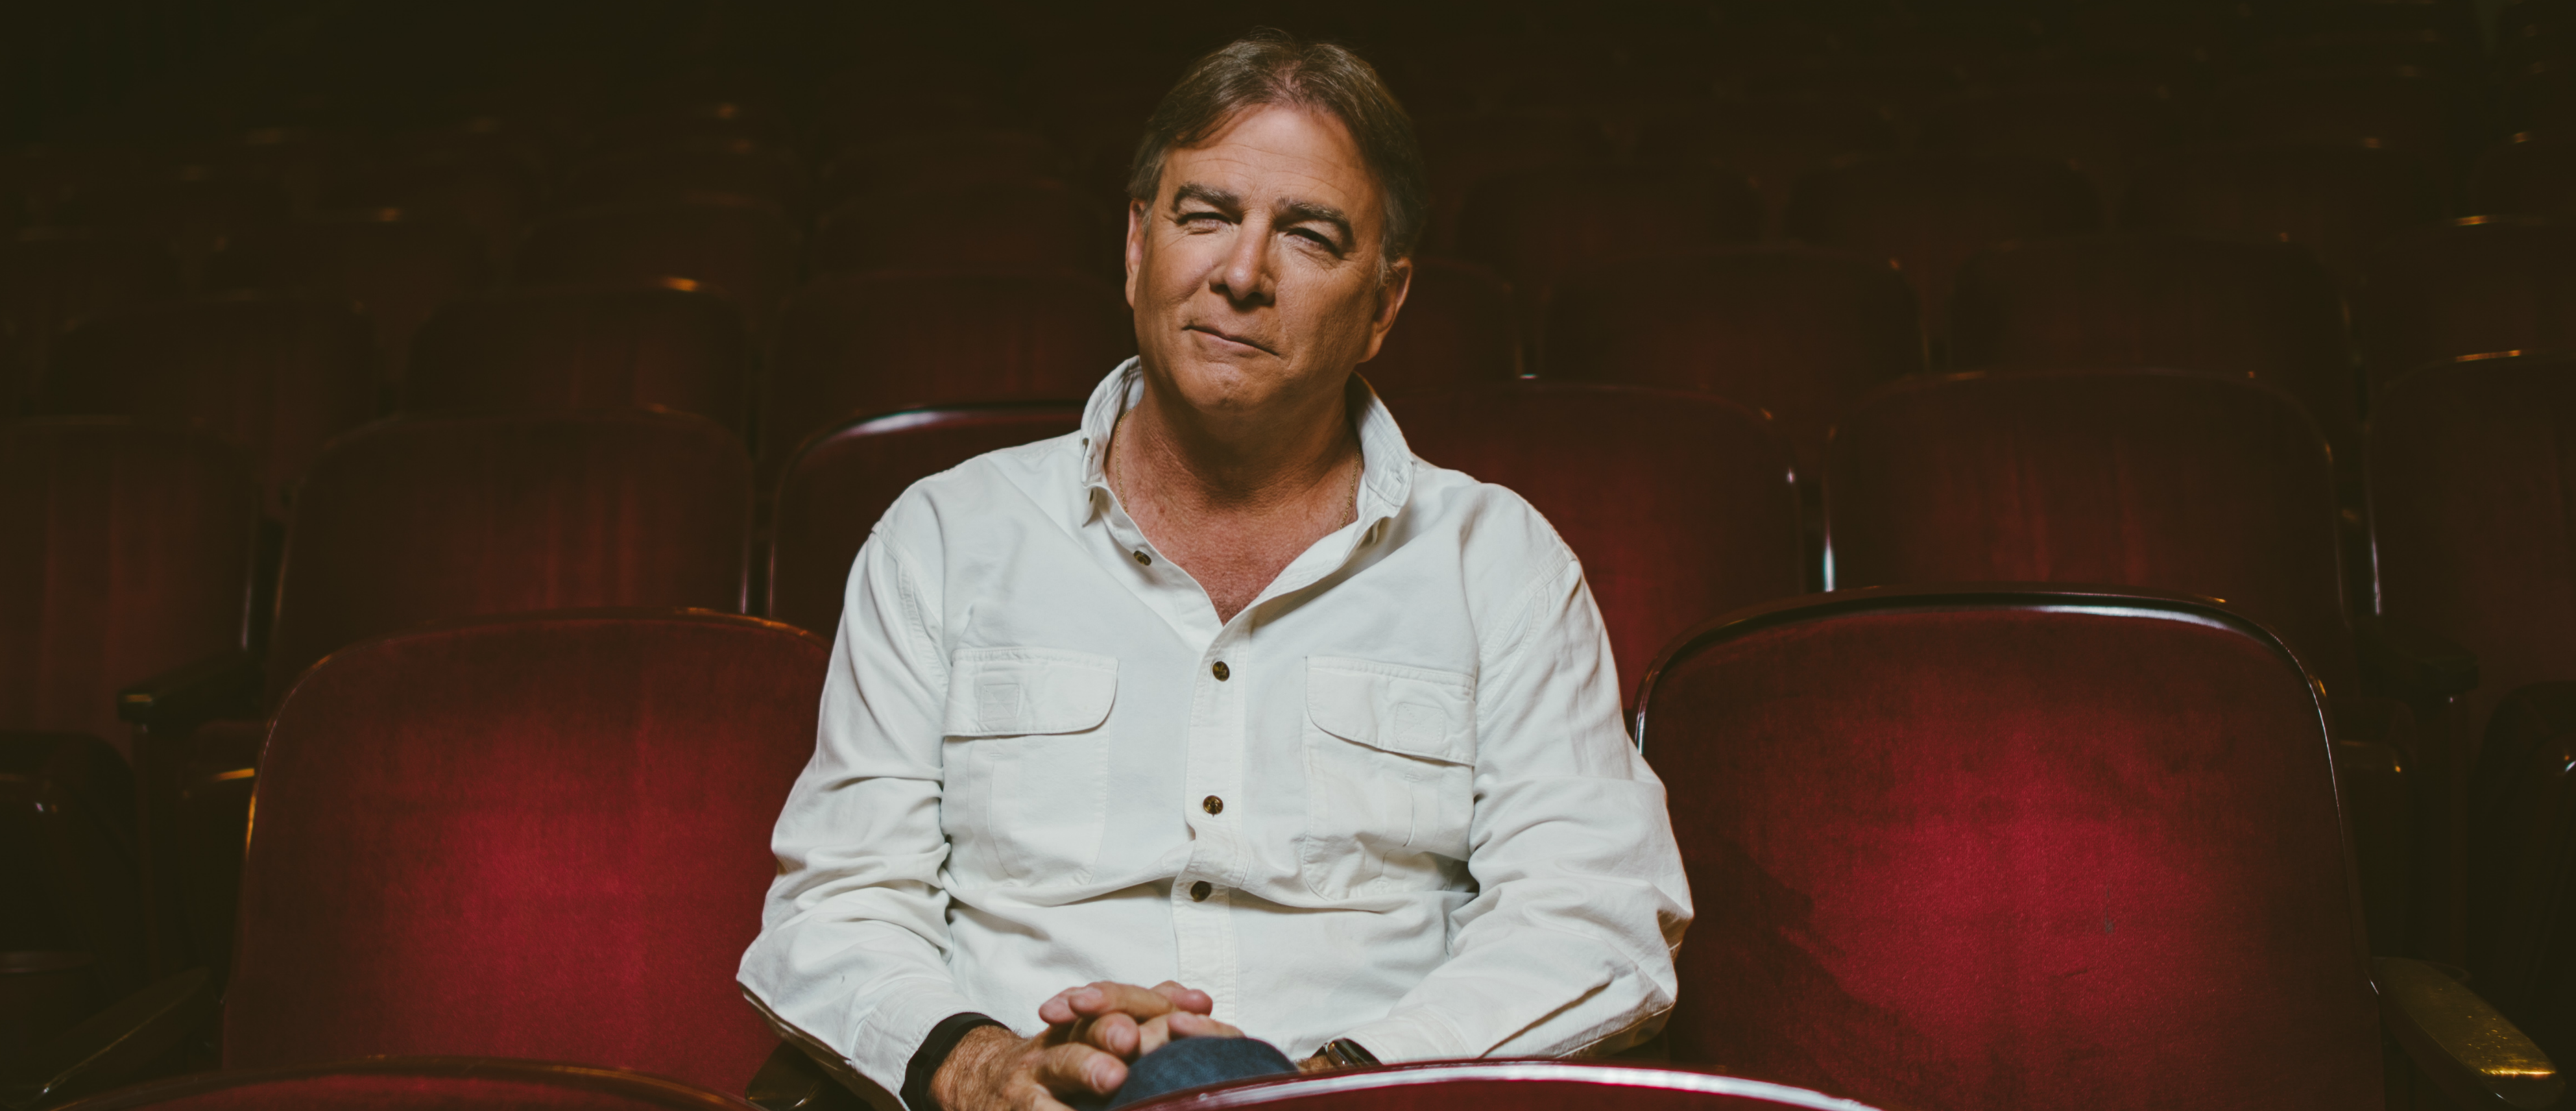 Bill Engvall | Comedian, Actor, Writer